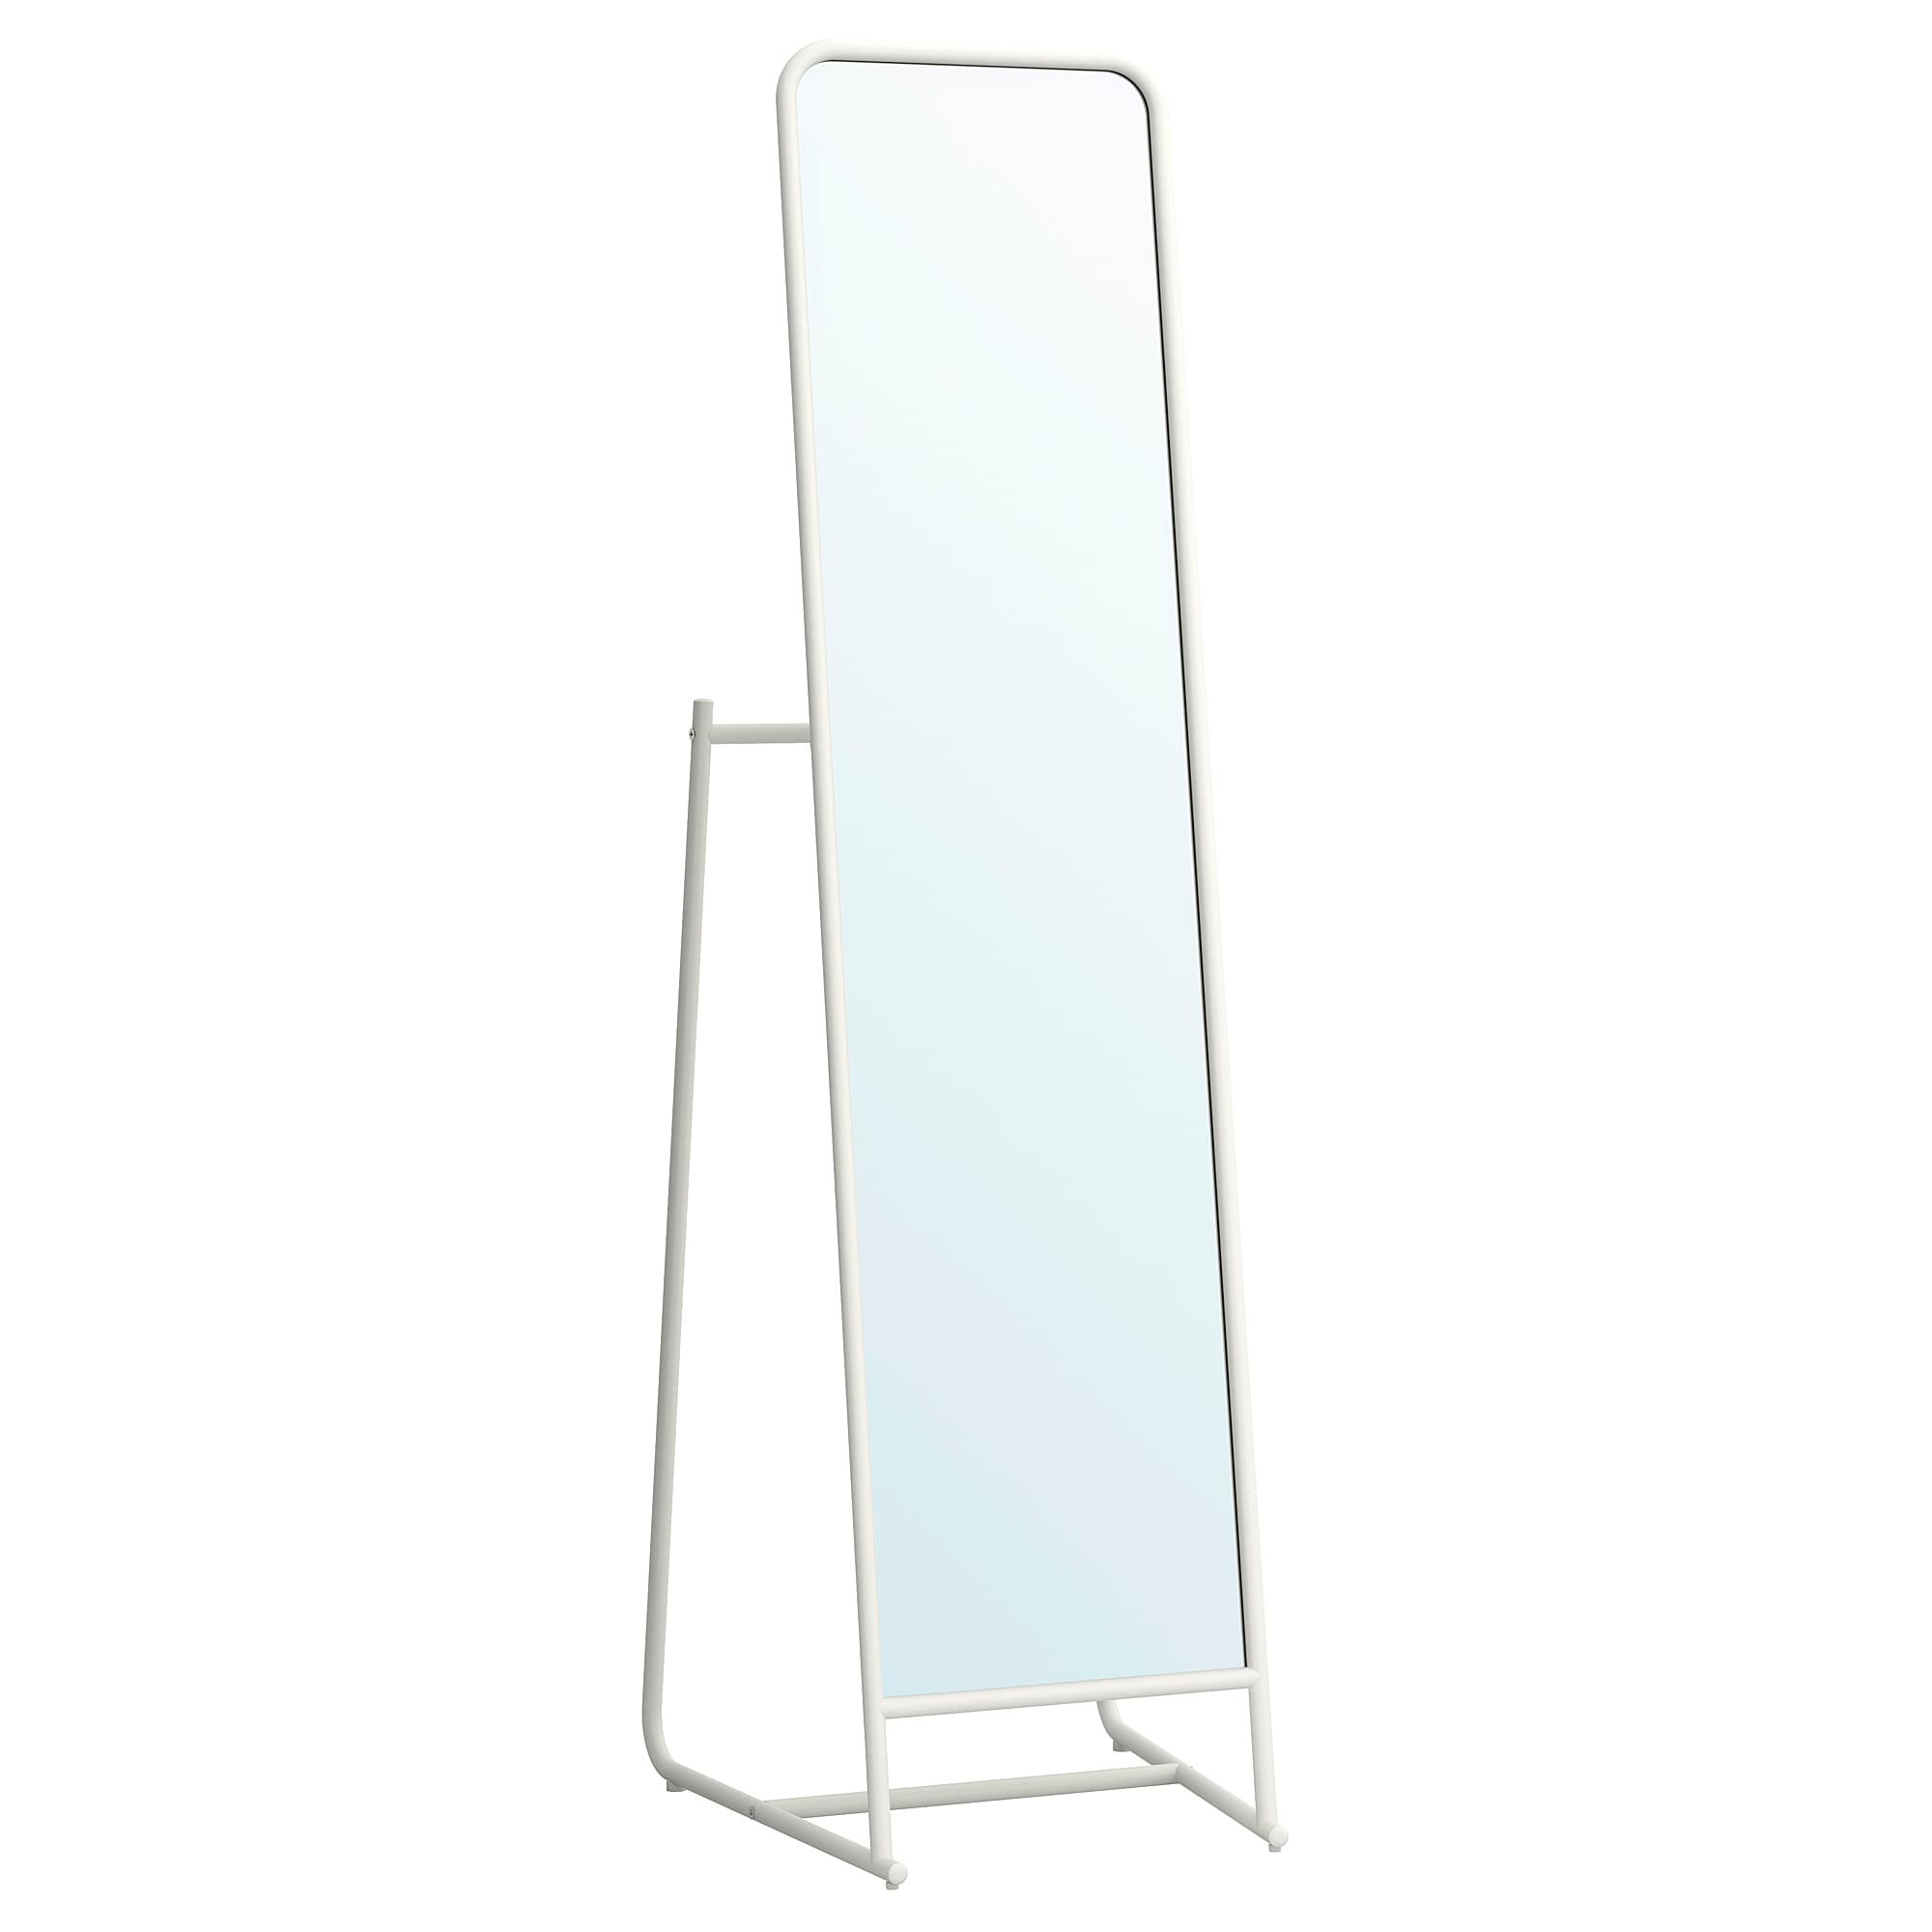 Stand Up Wall Mirrors For Most Popular Ikea Knapper White Floor Mirror In 2019 (Gallery 11 of 20)